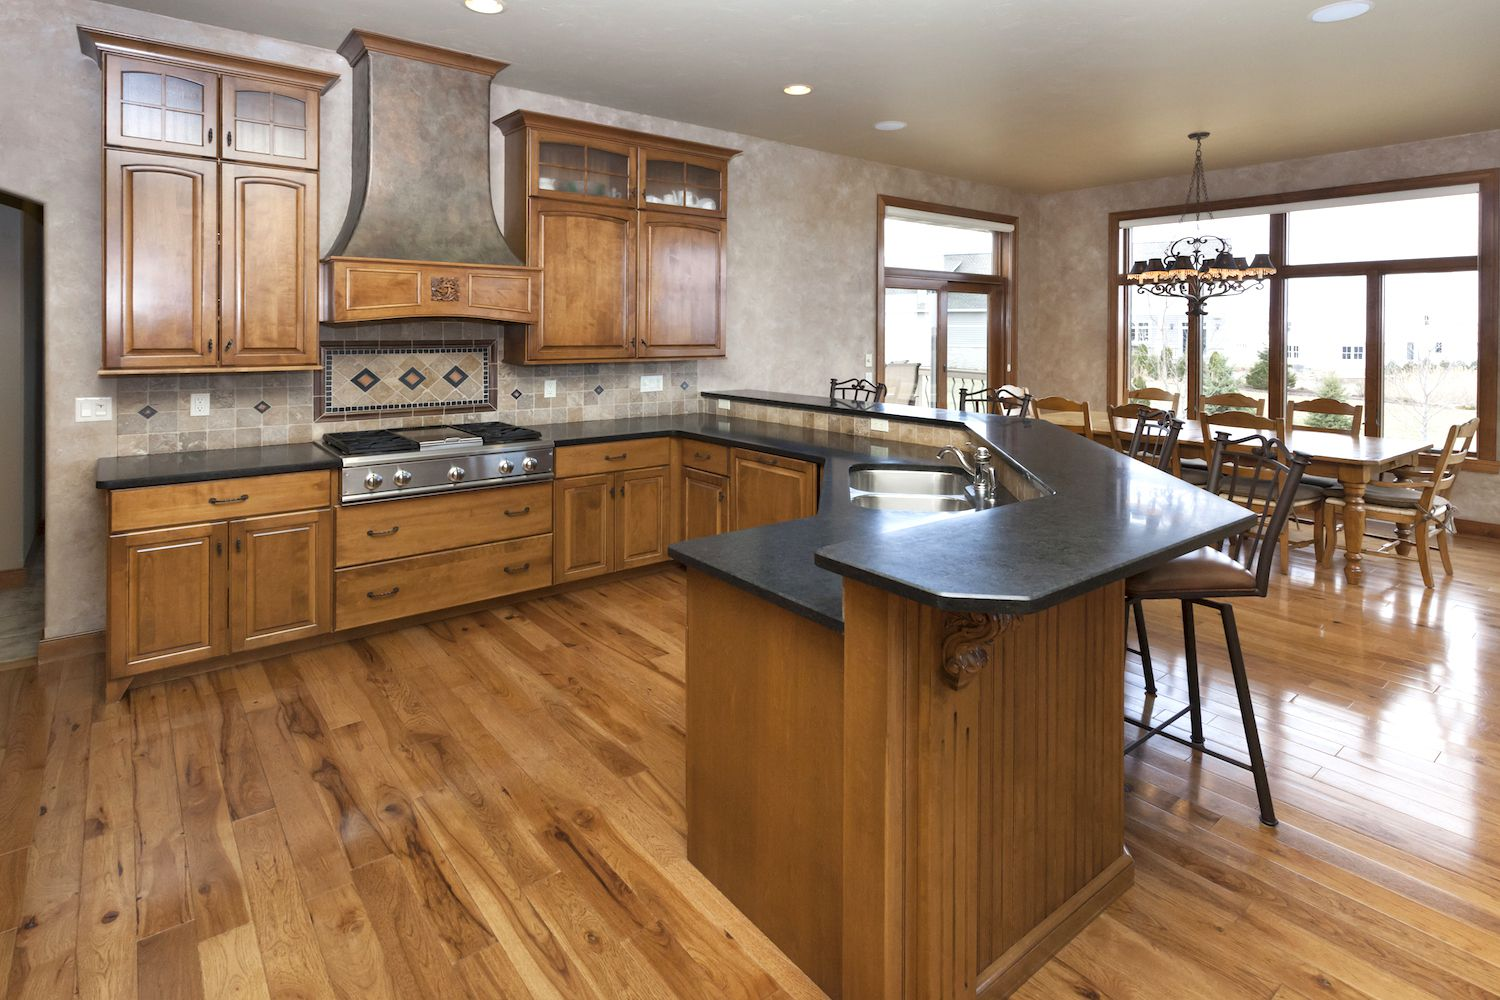 How to choose the best colors for granite countertops for Choosing kitchen colors